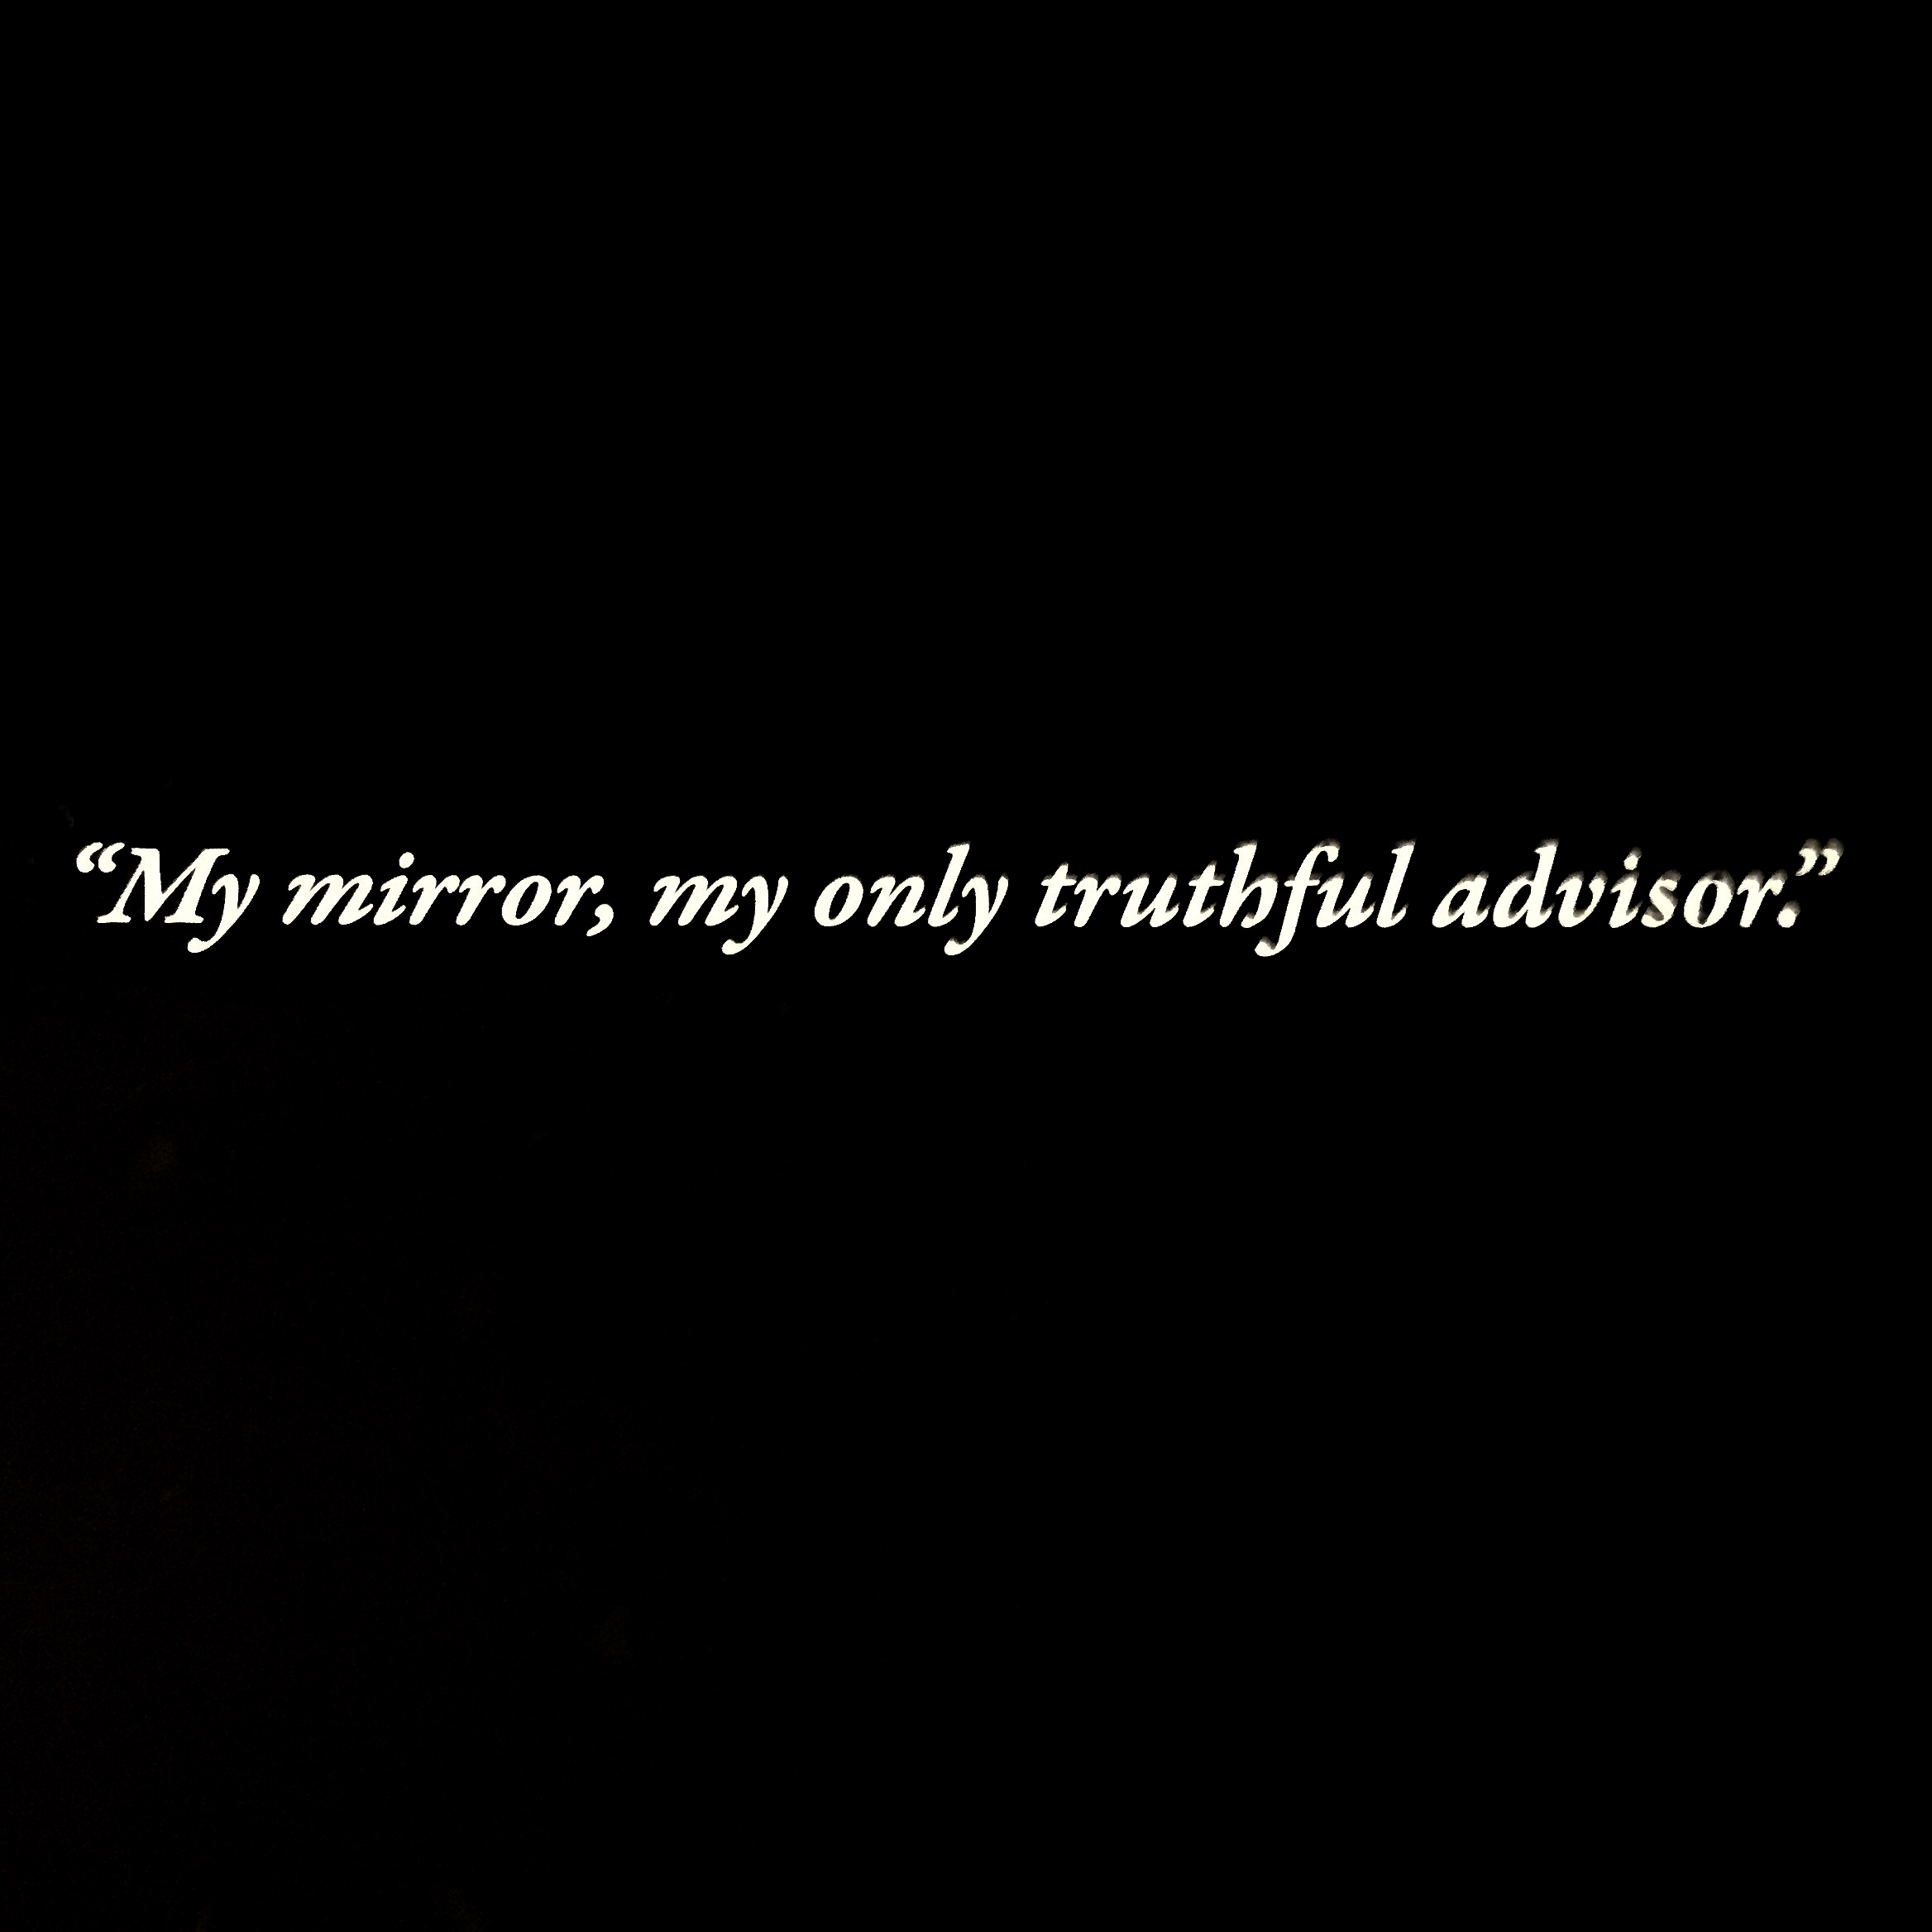 """My mirror, my only truthful advisor."" -Jacqueline de Ribes"